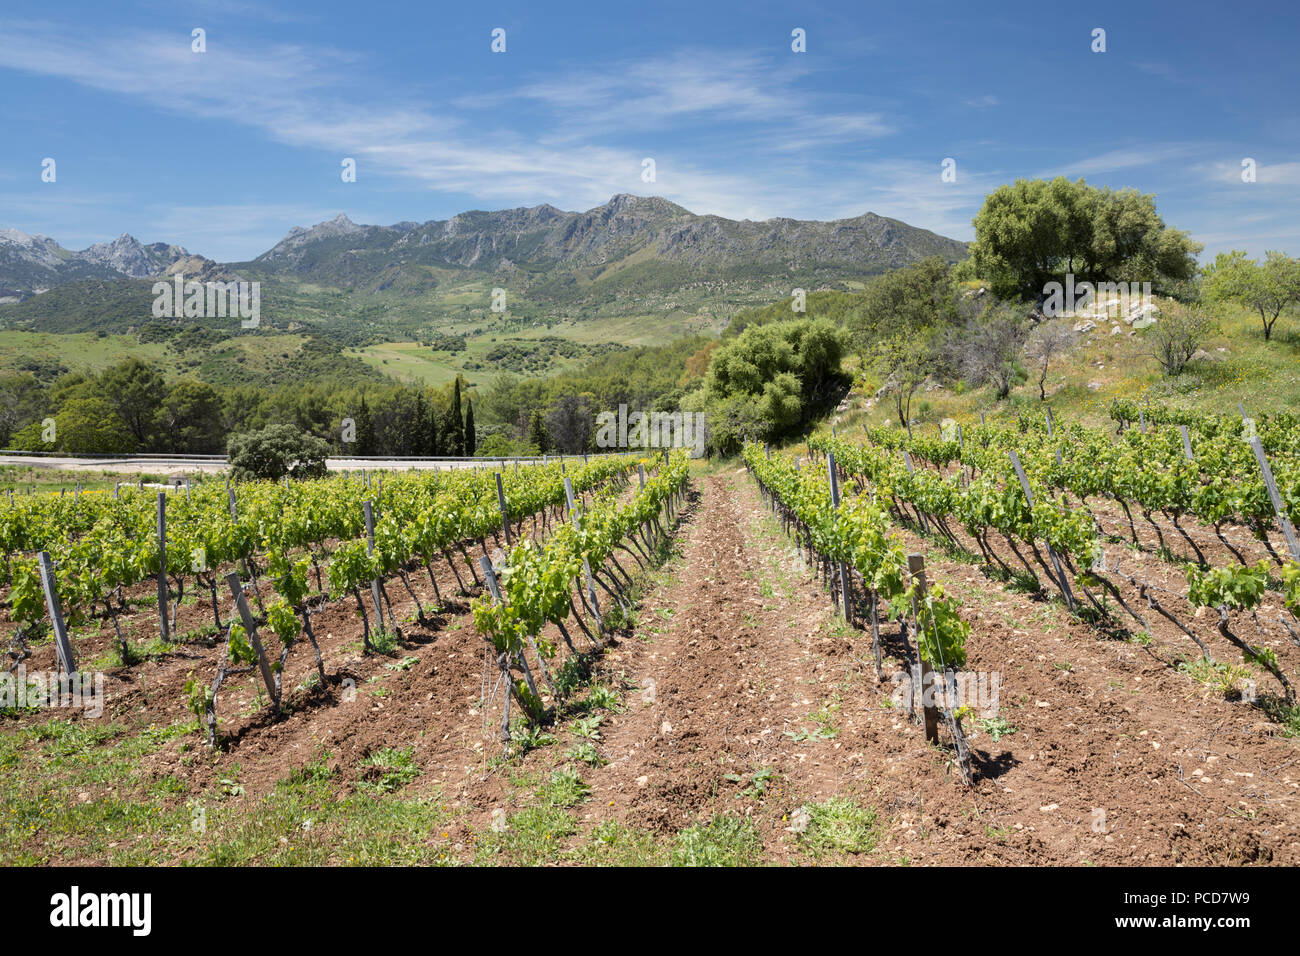 Vineyard set below mountains of the Sierra de Grazalema Natural Park, Zahara de la Sierra, Cadiz Province, Andalucia, Spain, Europe - Stock Image